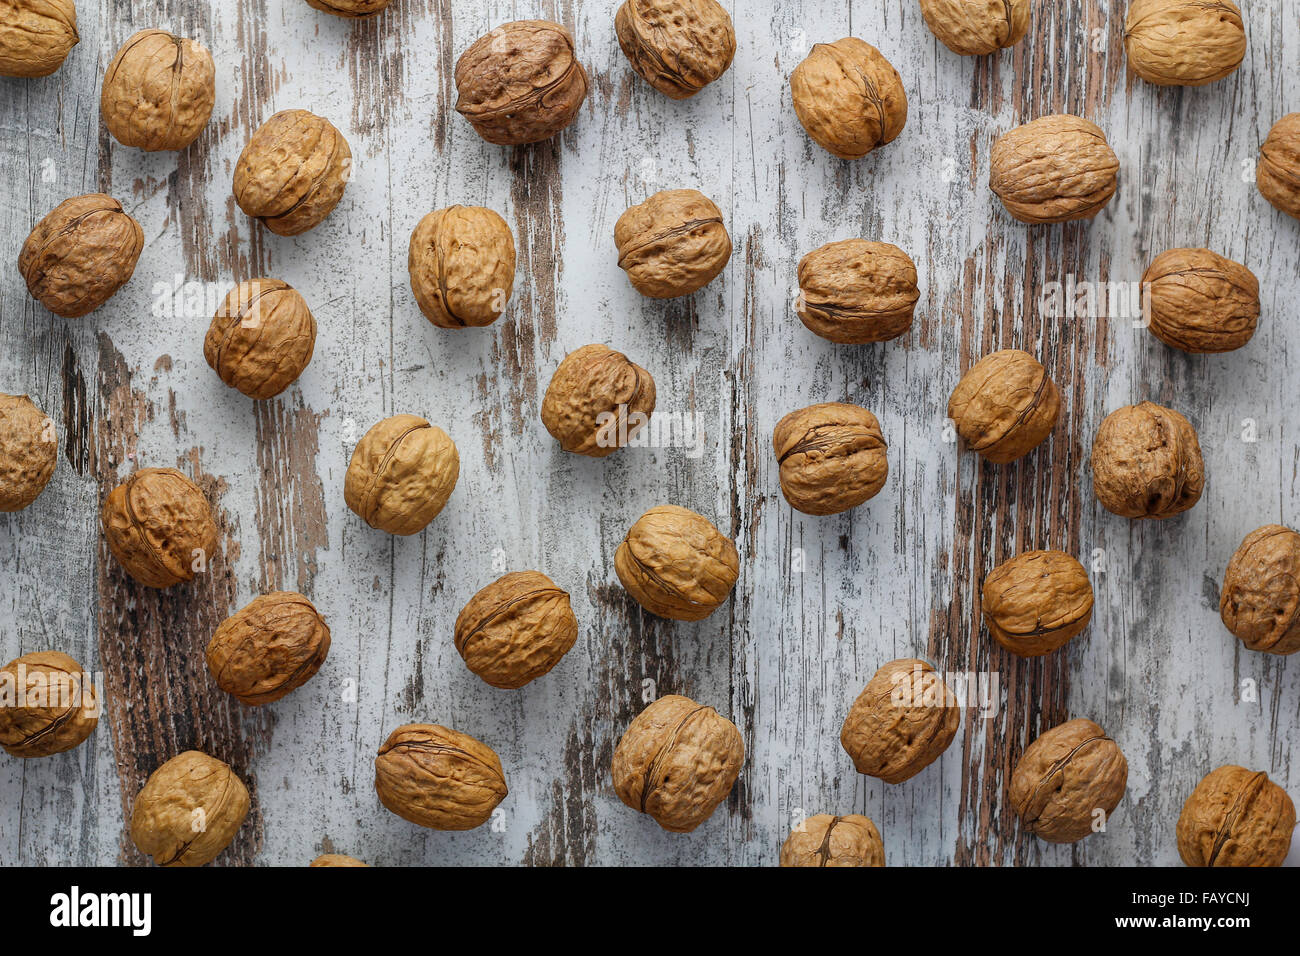 Walnuts in a wood background - Stock Image